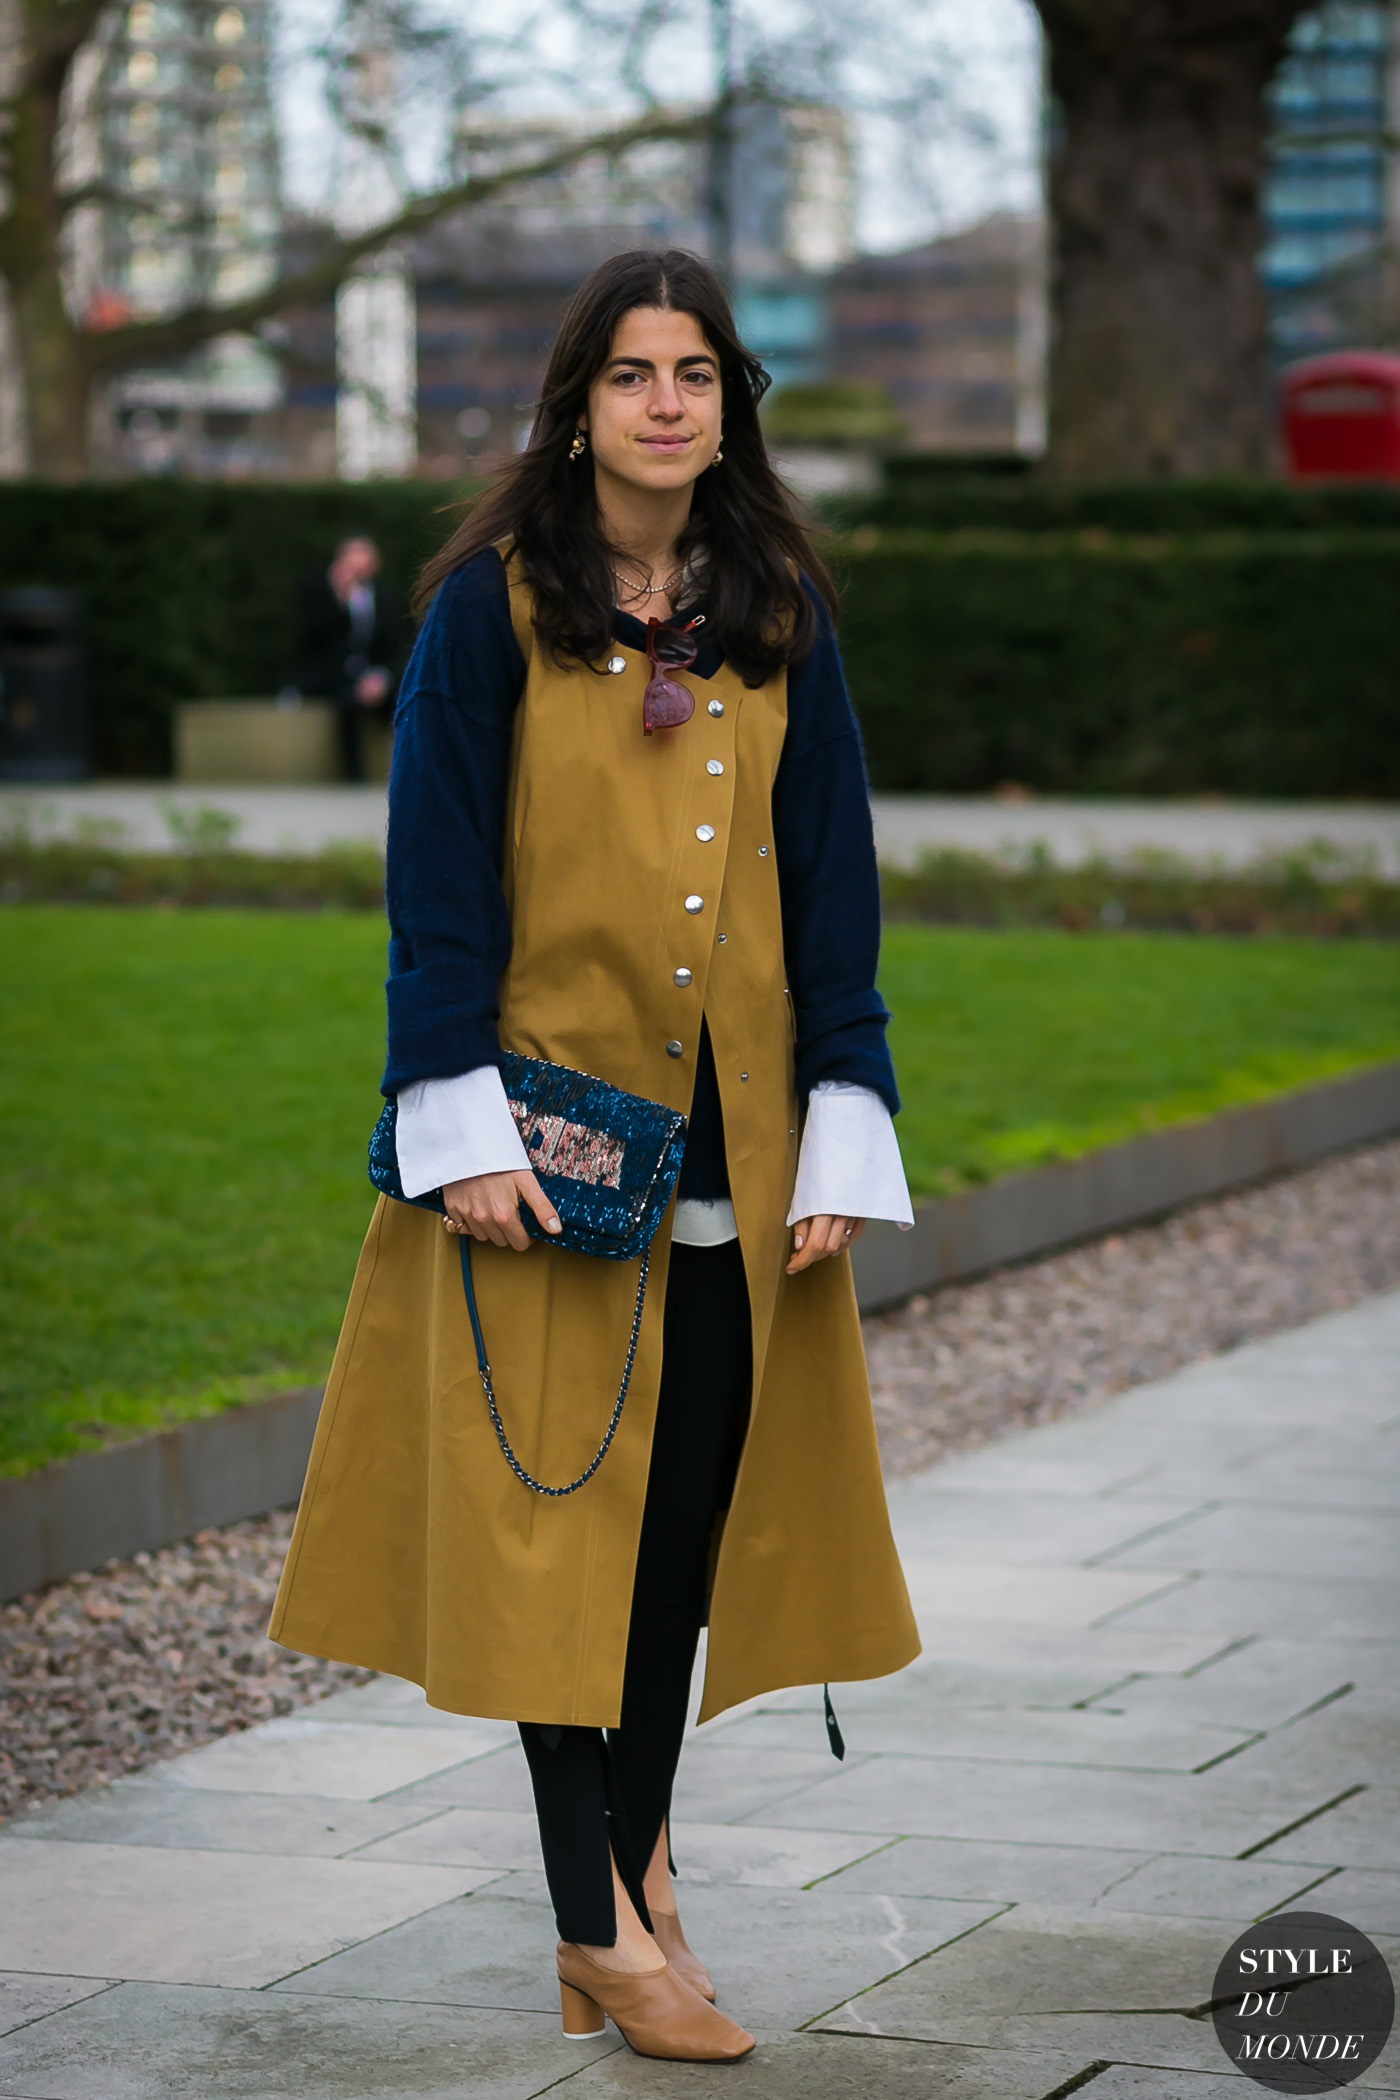 Leandra Medine by STYLEDUMONDE Street Style Fashion Photography